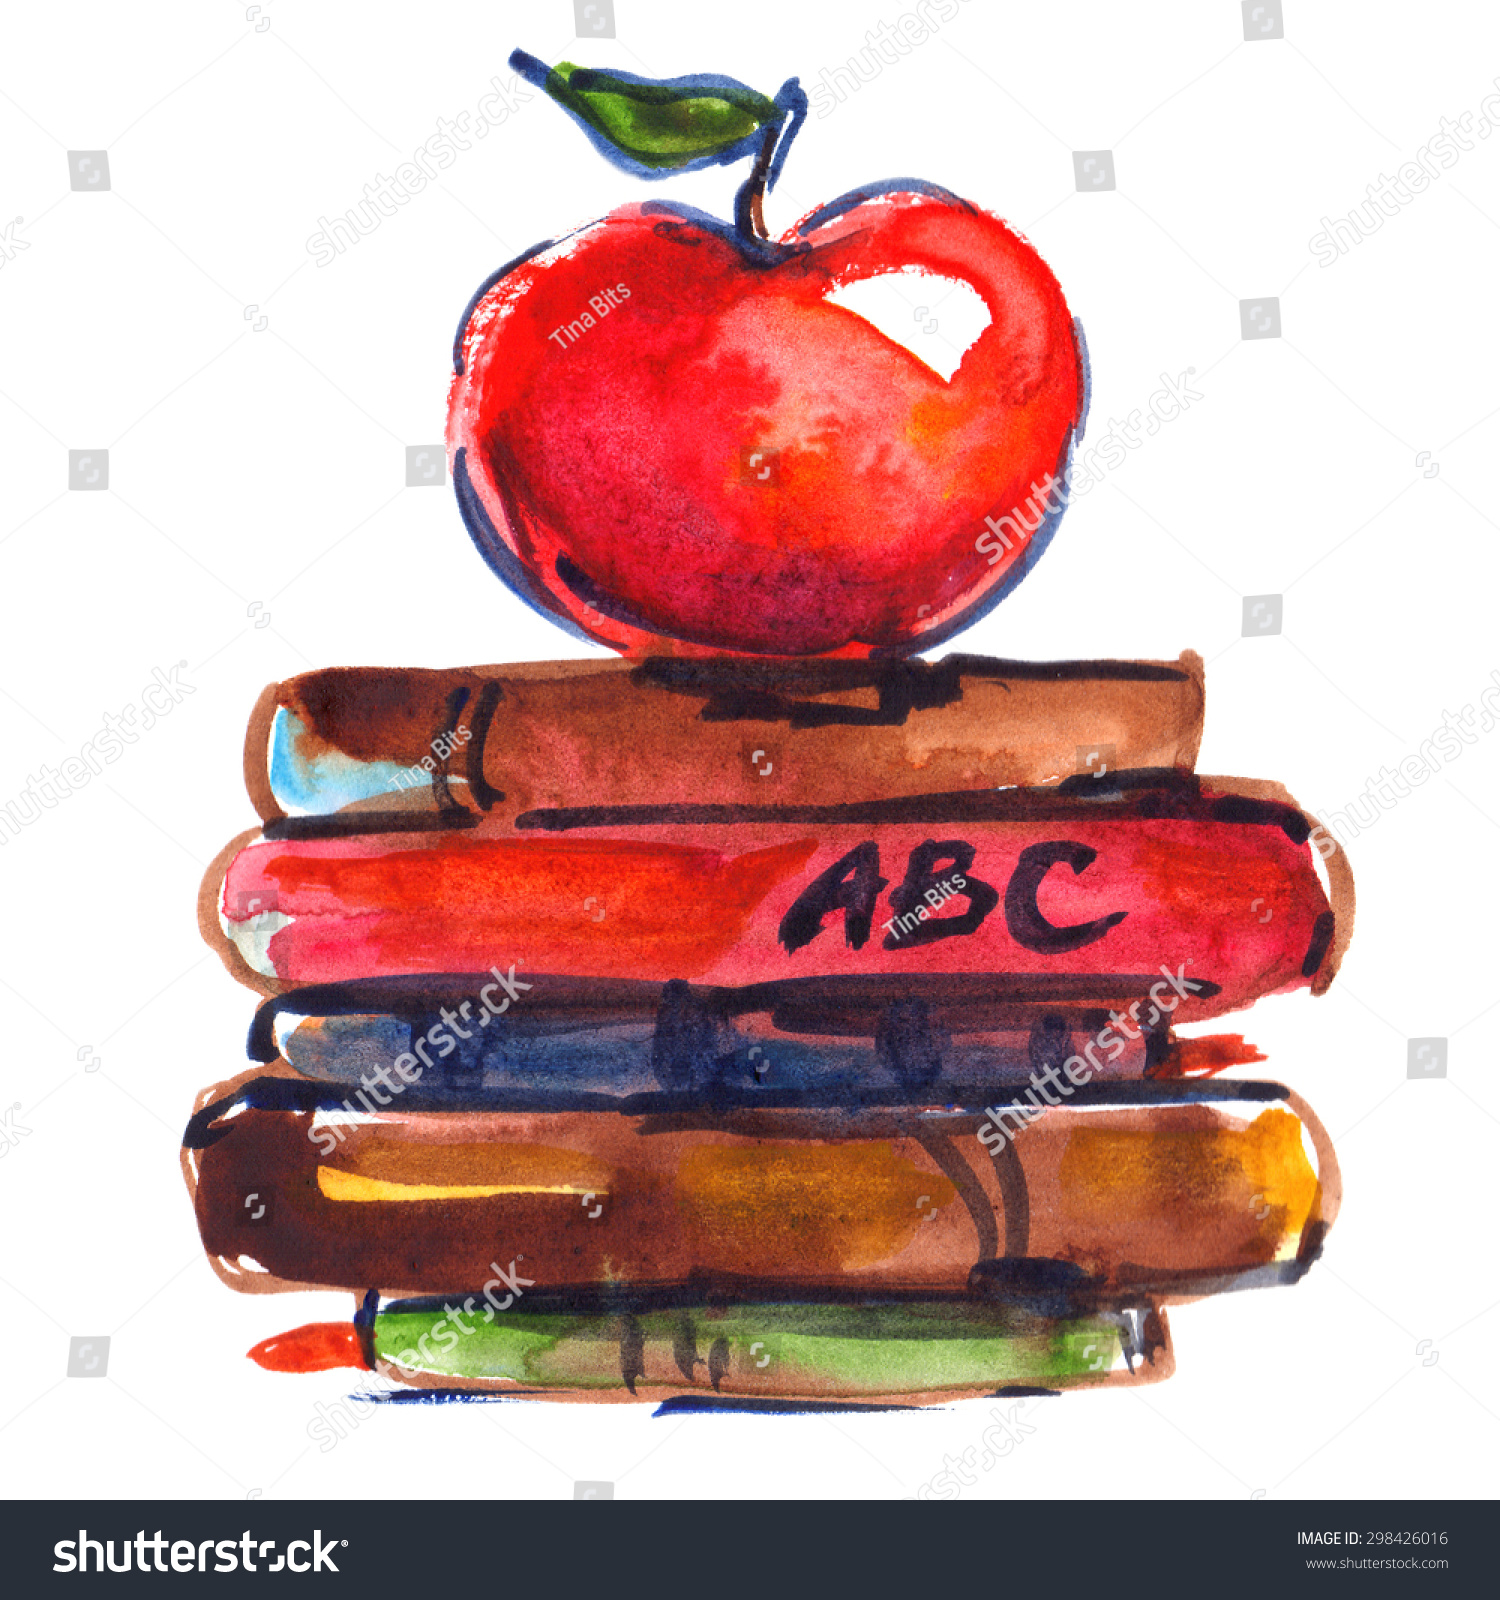 Big Stack Books Red Apple On Stock Illustration 298426016 ...